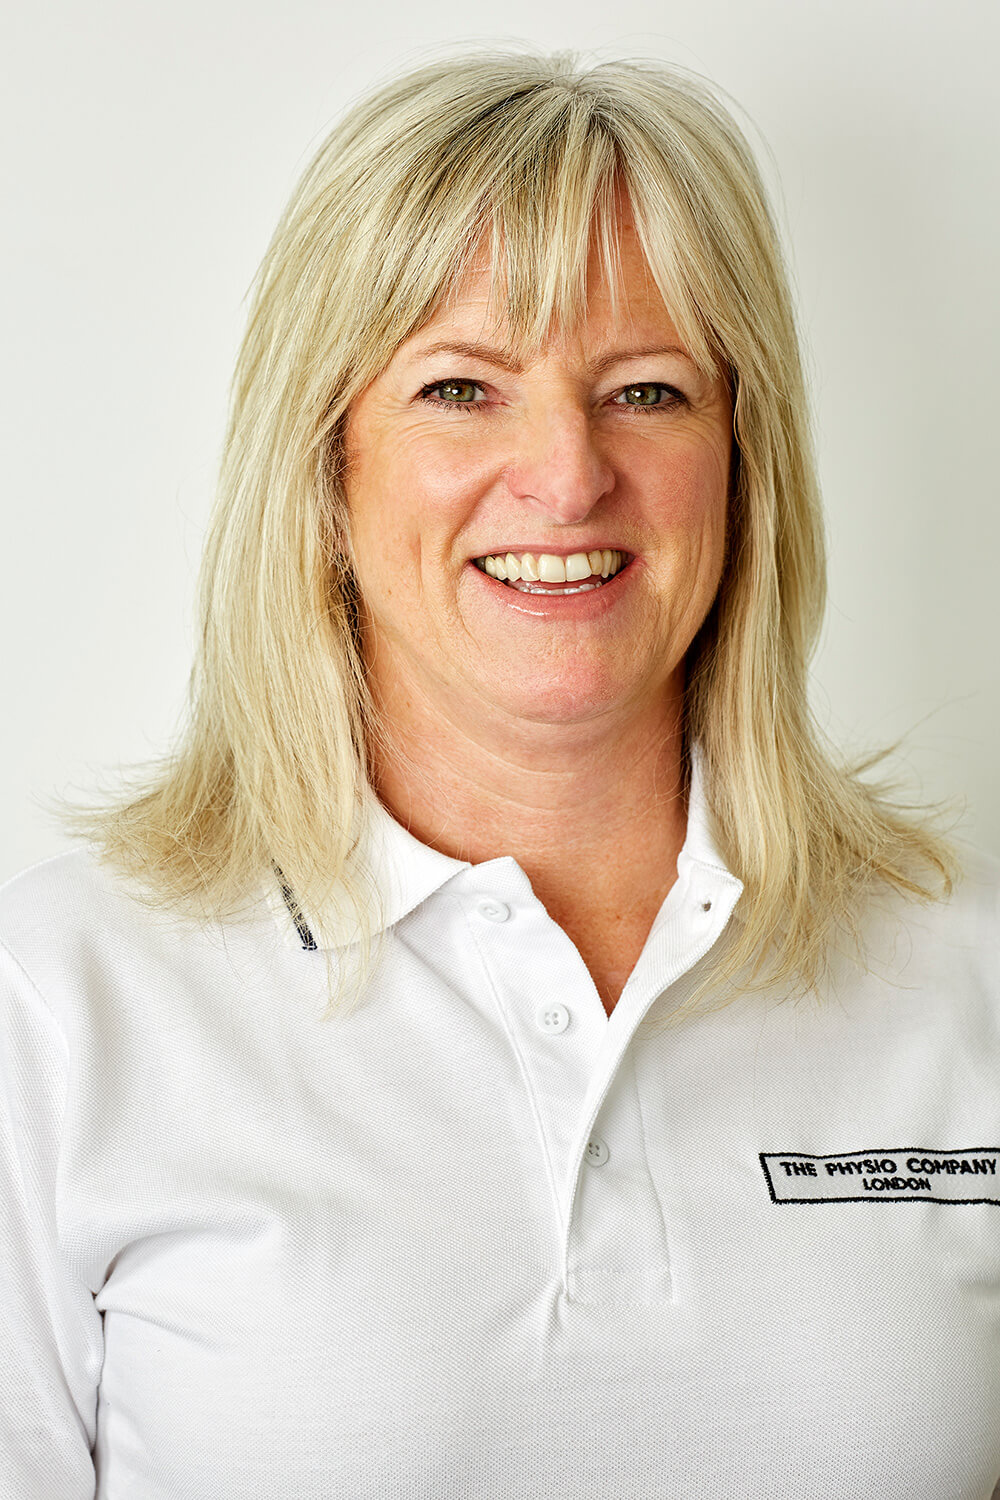 Catherine Fitzgerald - The Physio Company